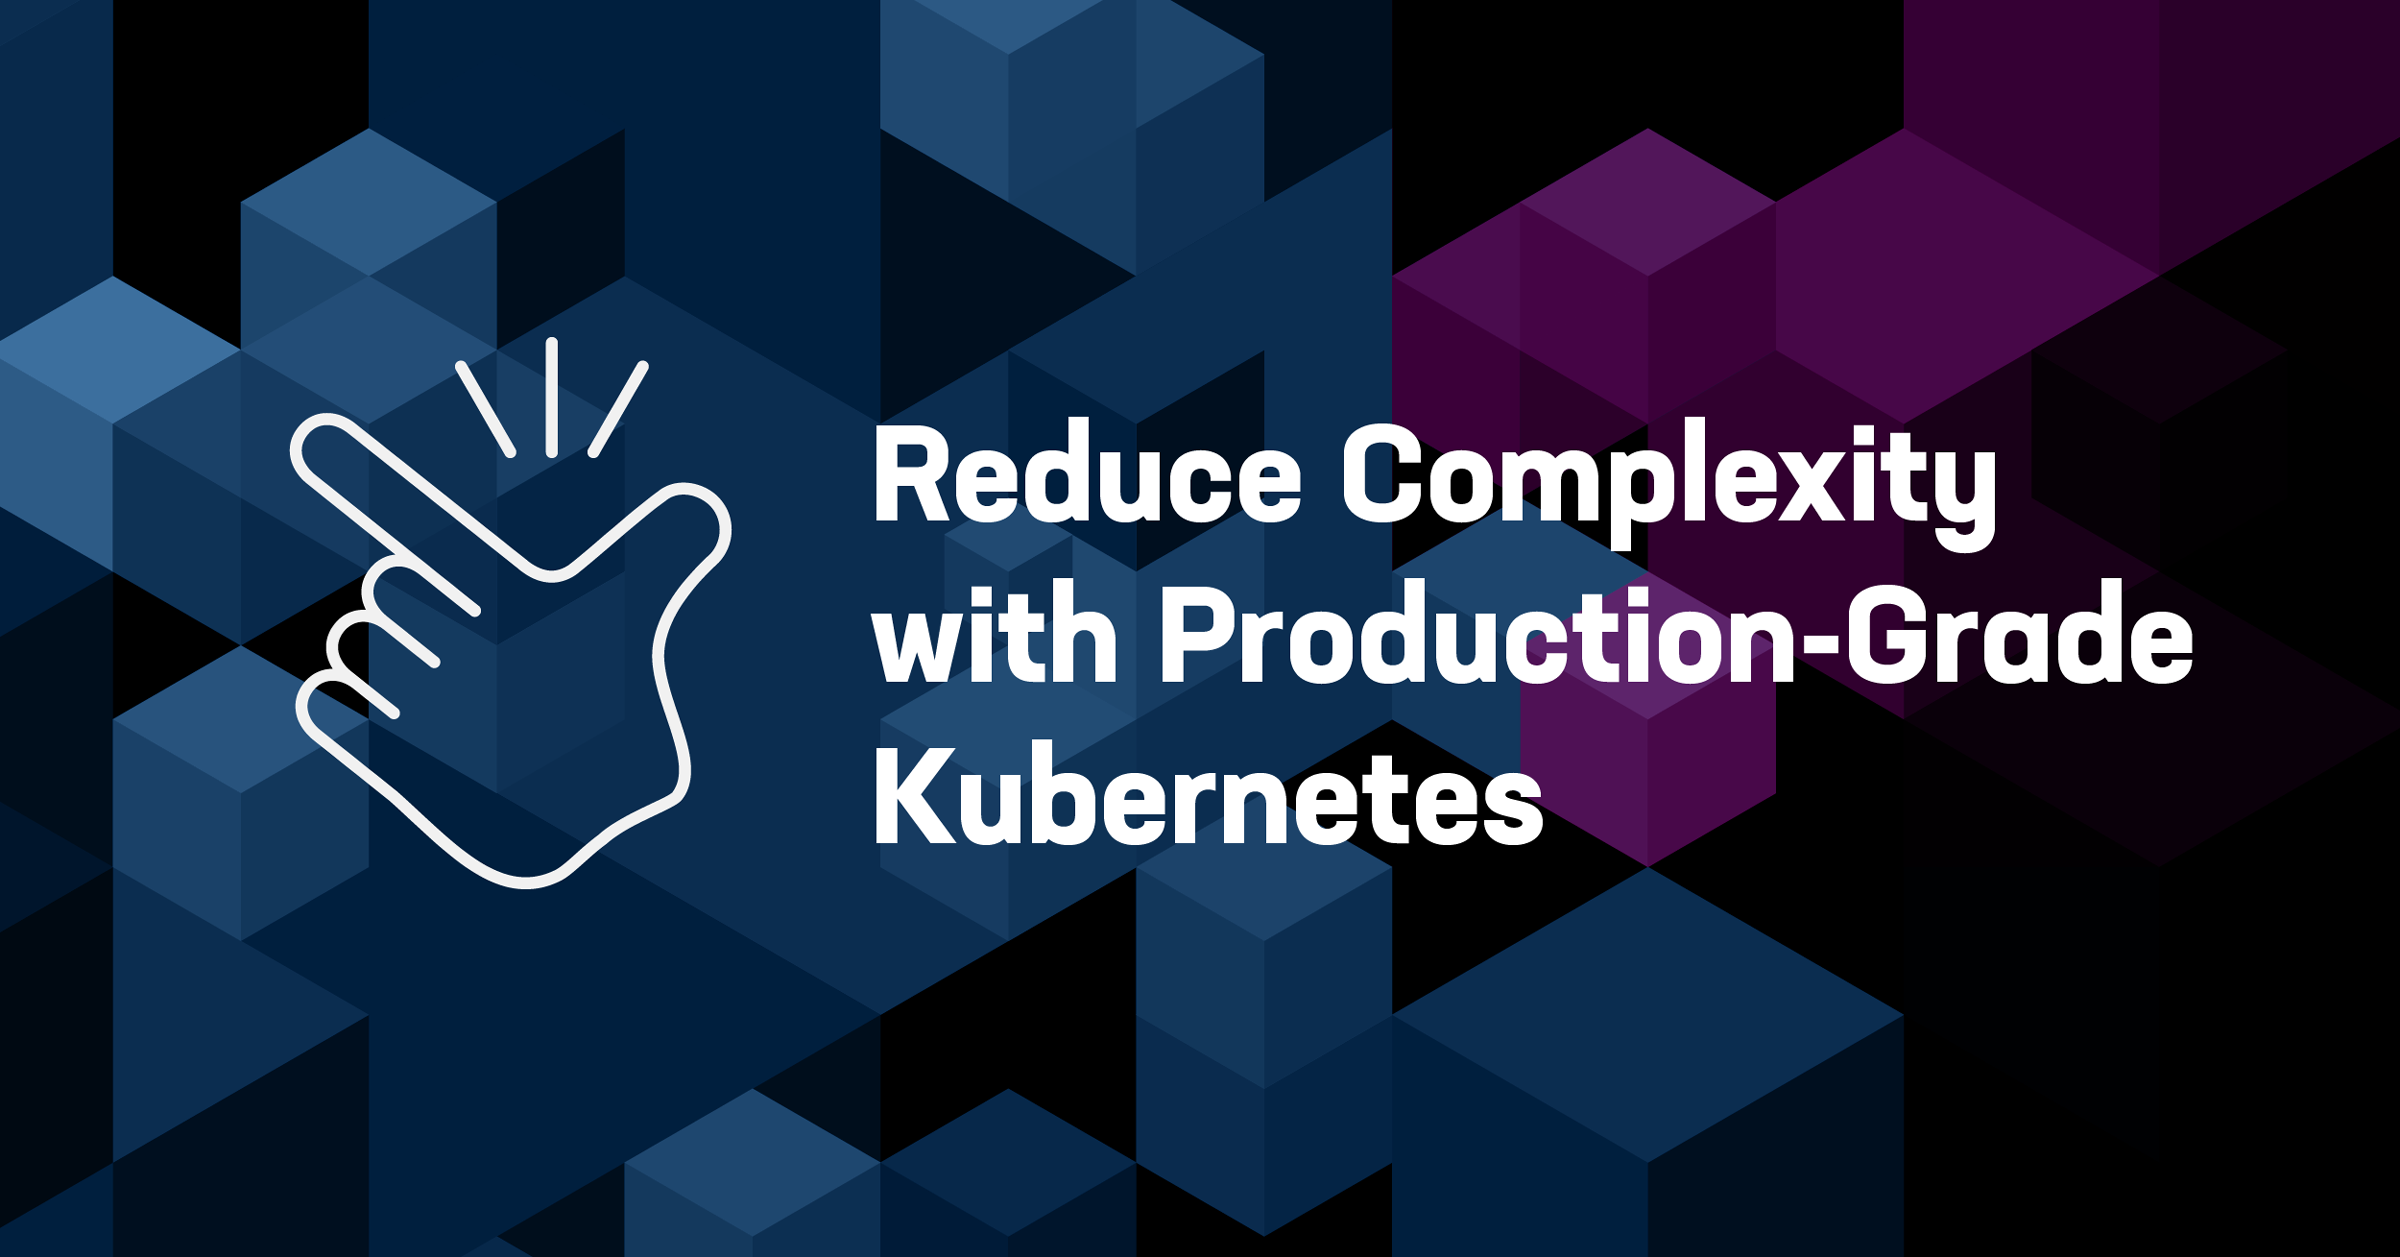 Reduce Complexity with Production-Grade Kubernetes